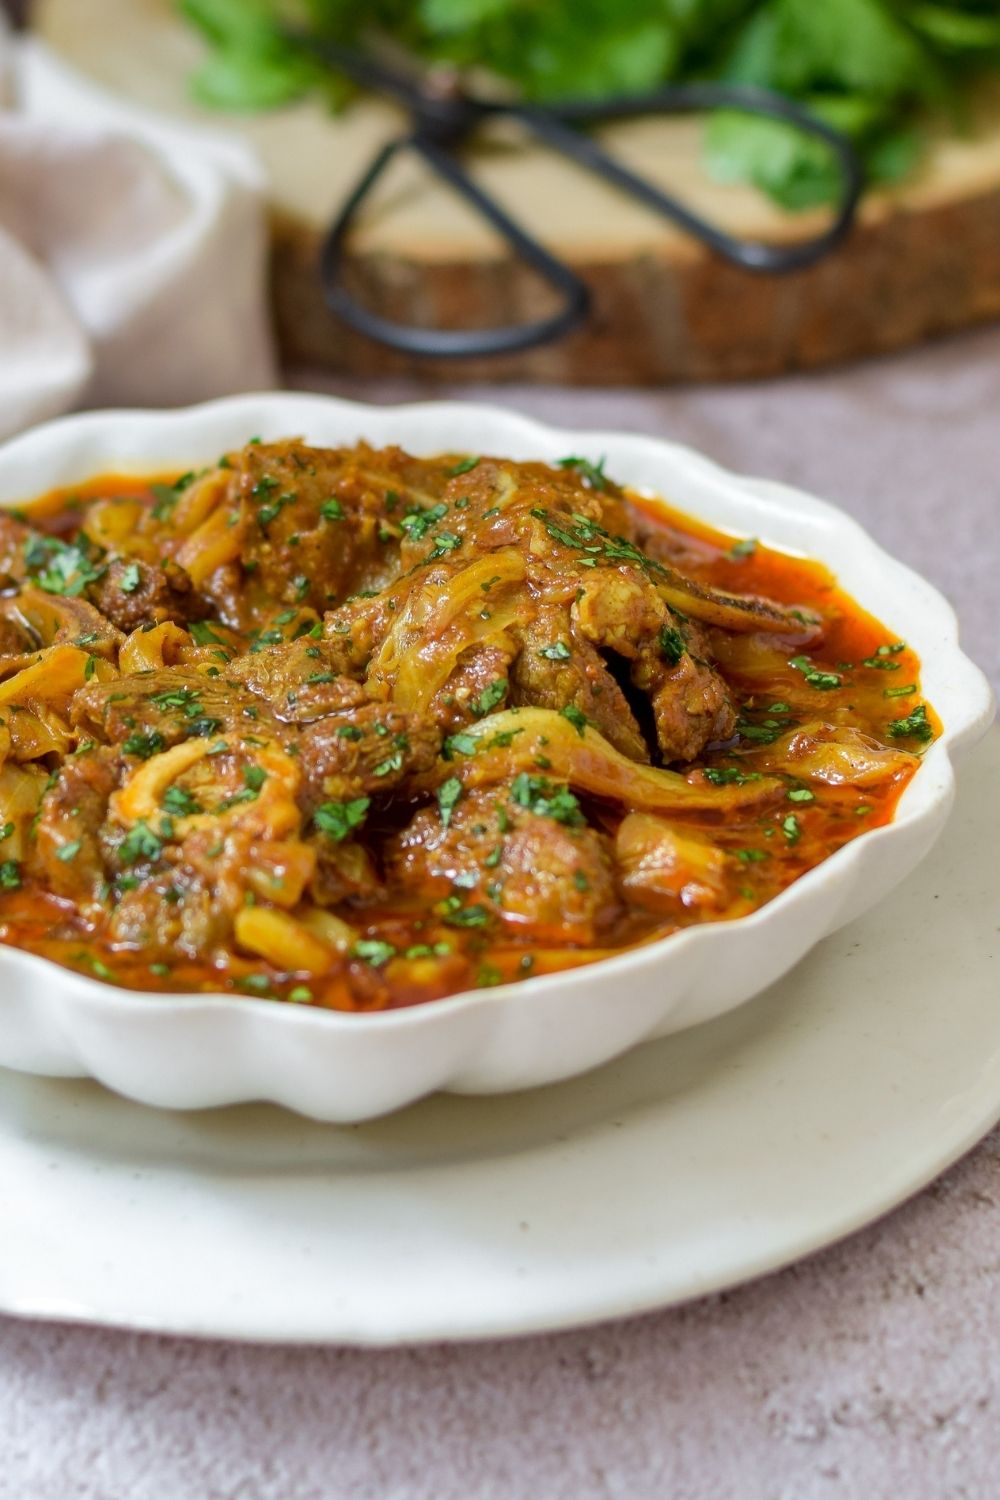 Lamb and Cabbage Curry in a white bowl